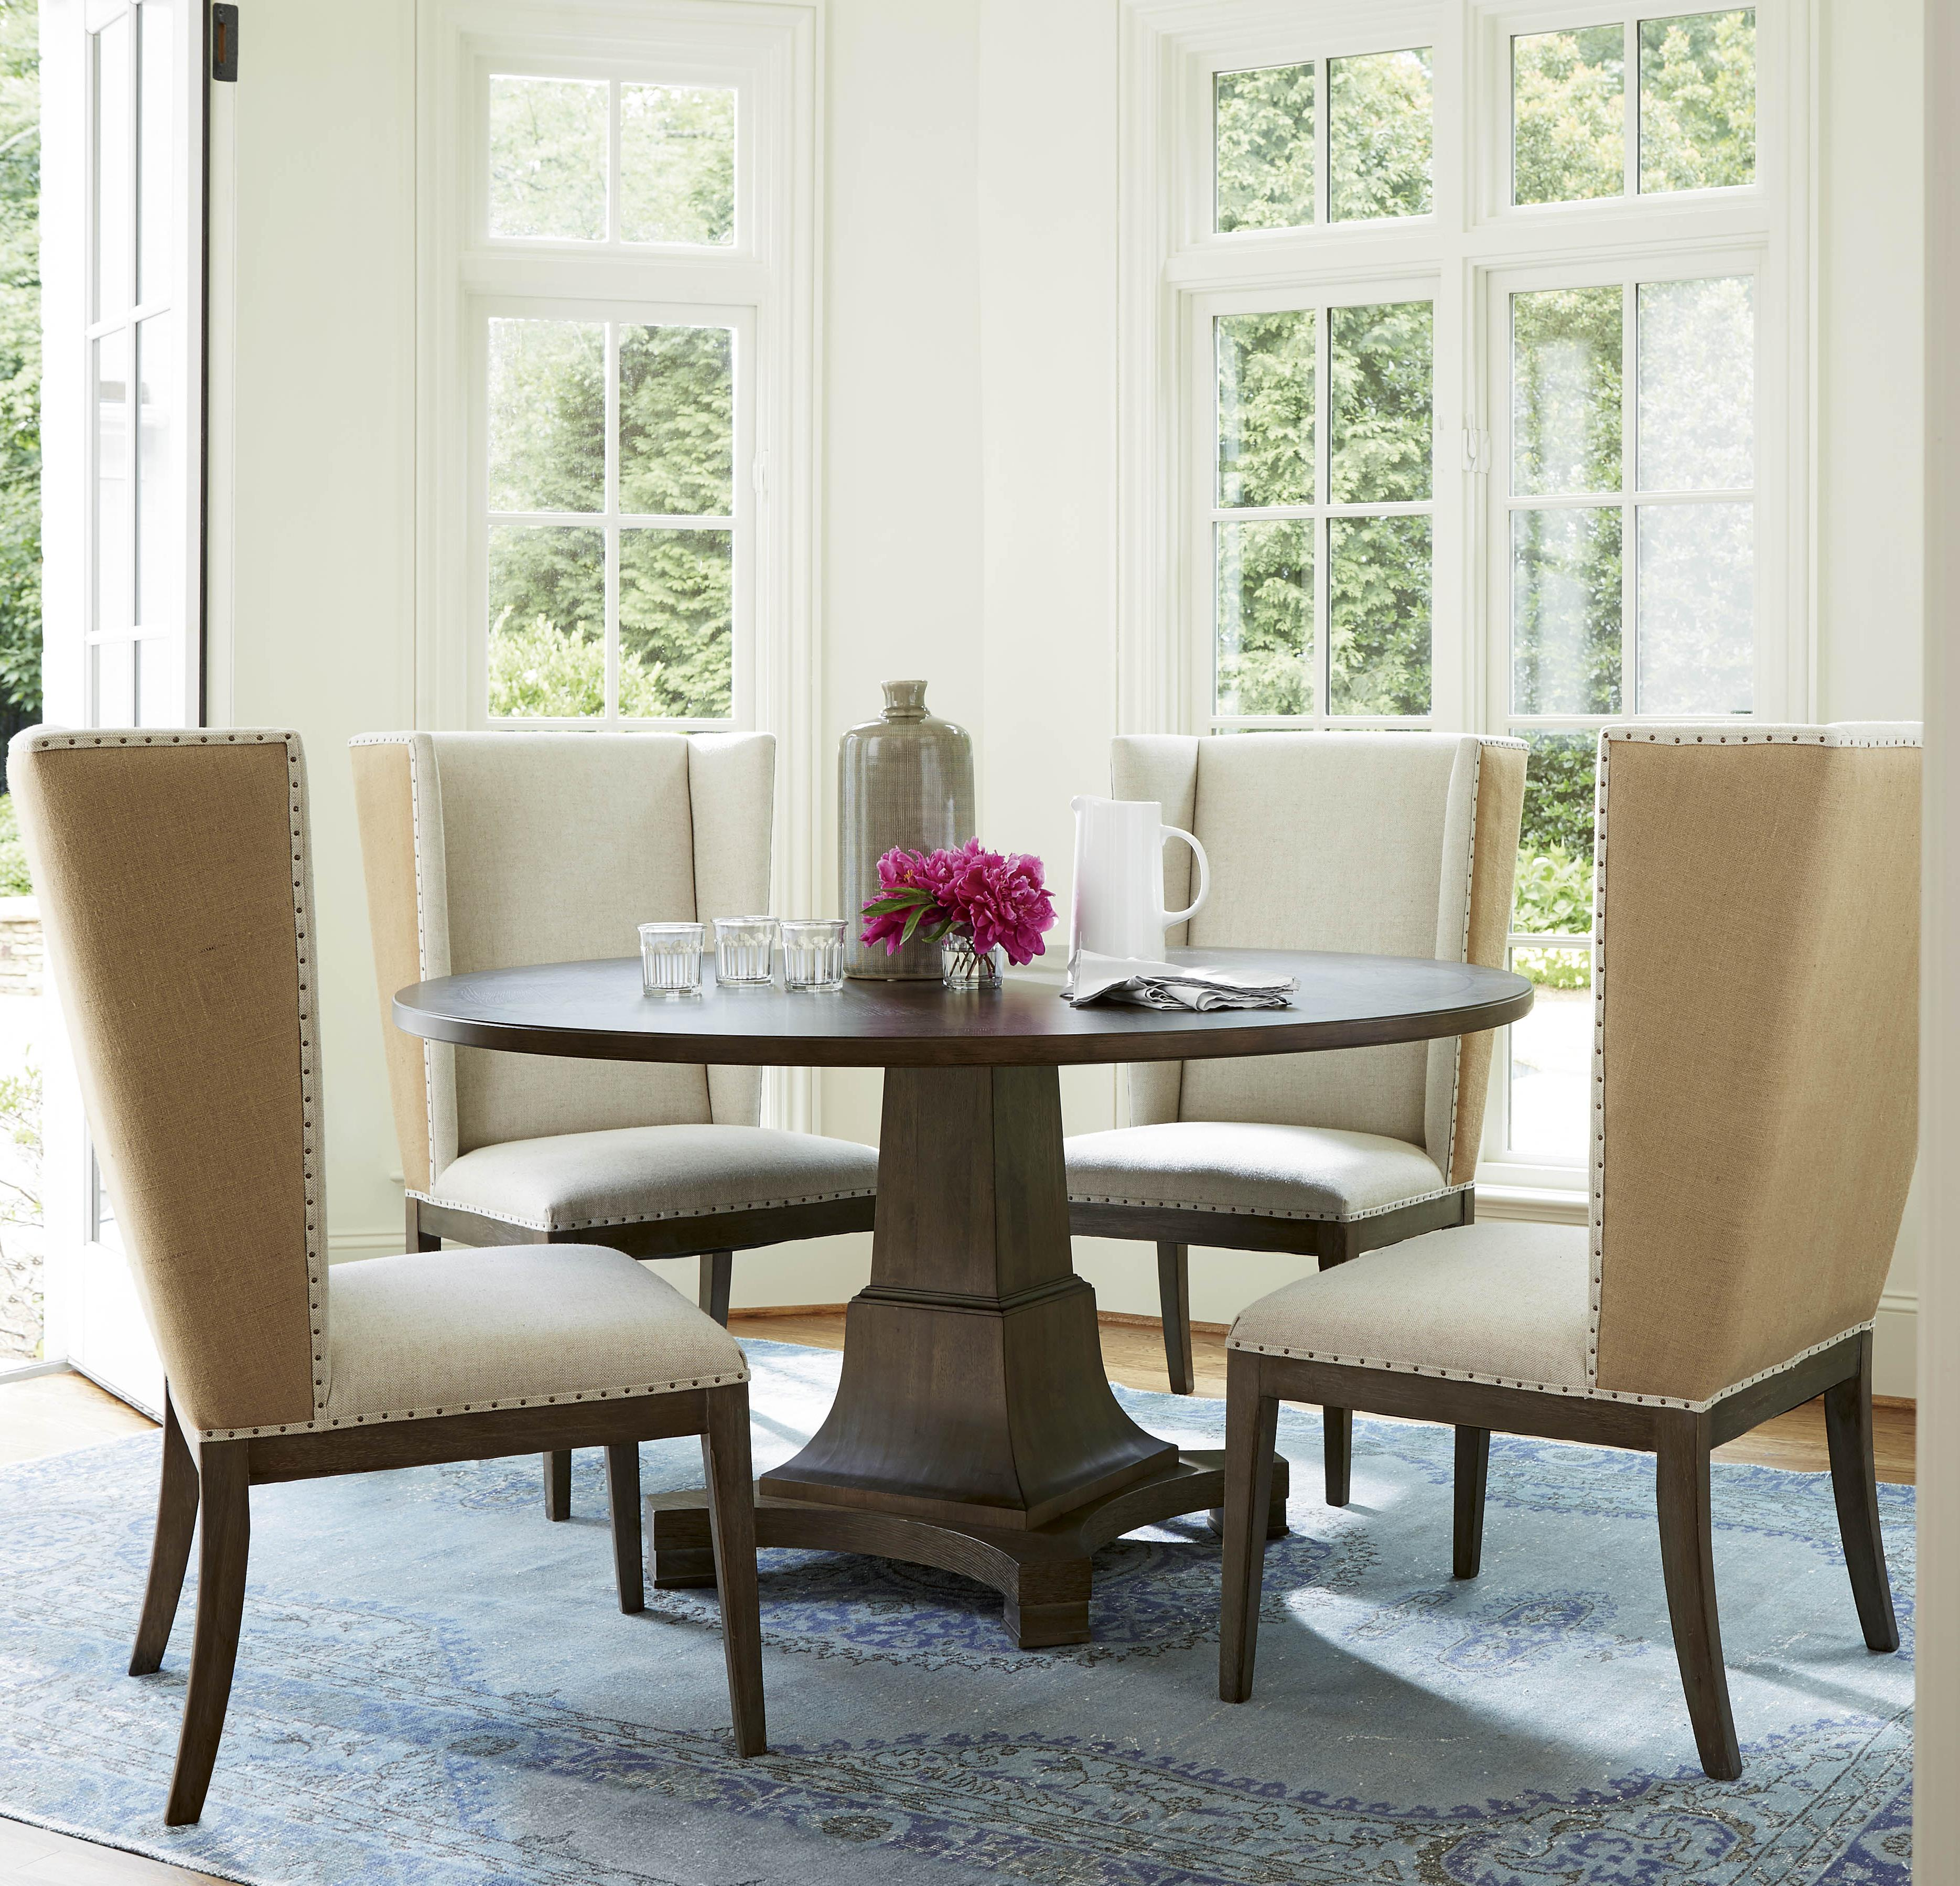 Oconnor Designs Playlist 5 Piece Dining Set With Host Side